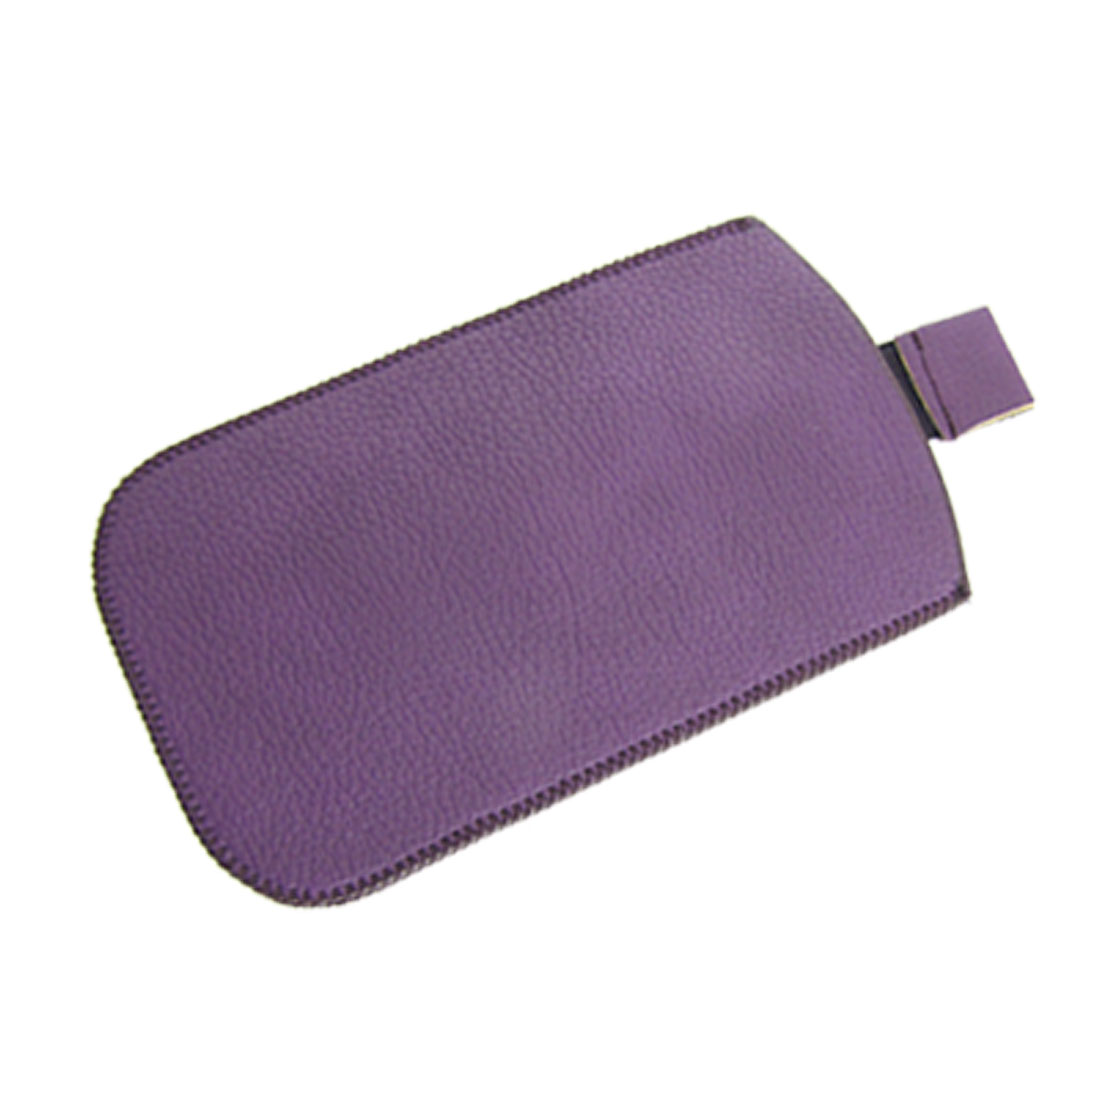 Palatinate Purple Faux Leather Pouch for Apple iPhone 4 4G